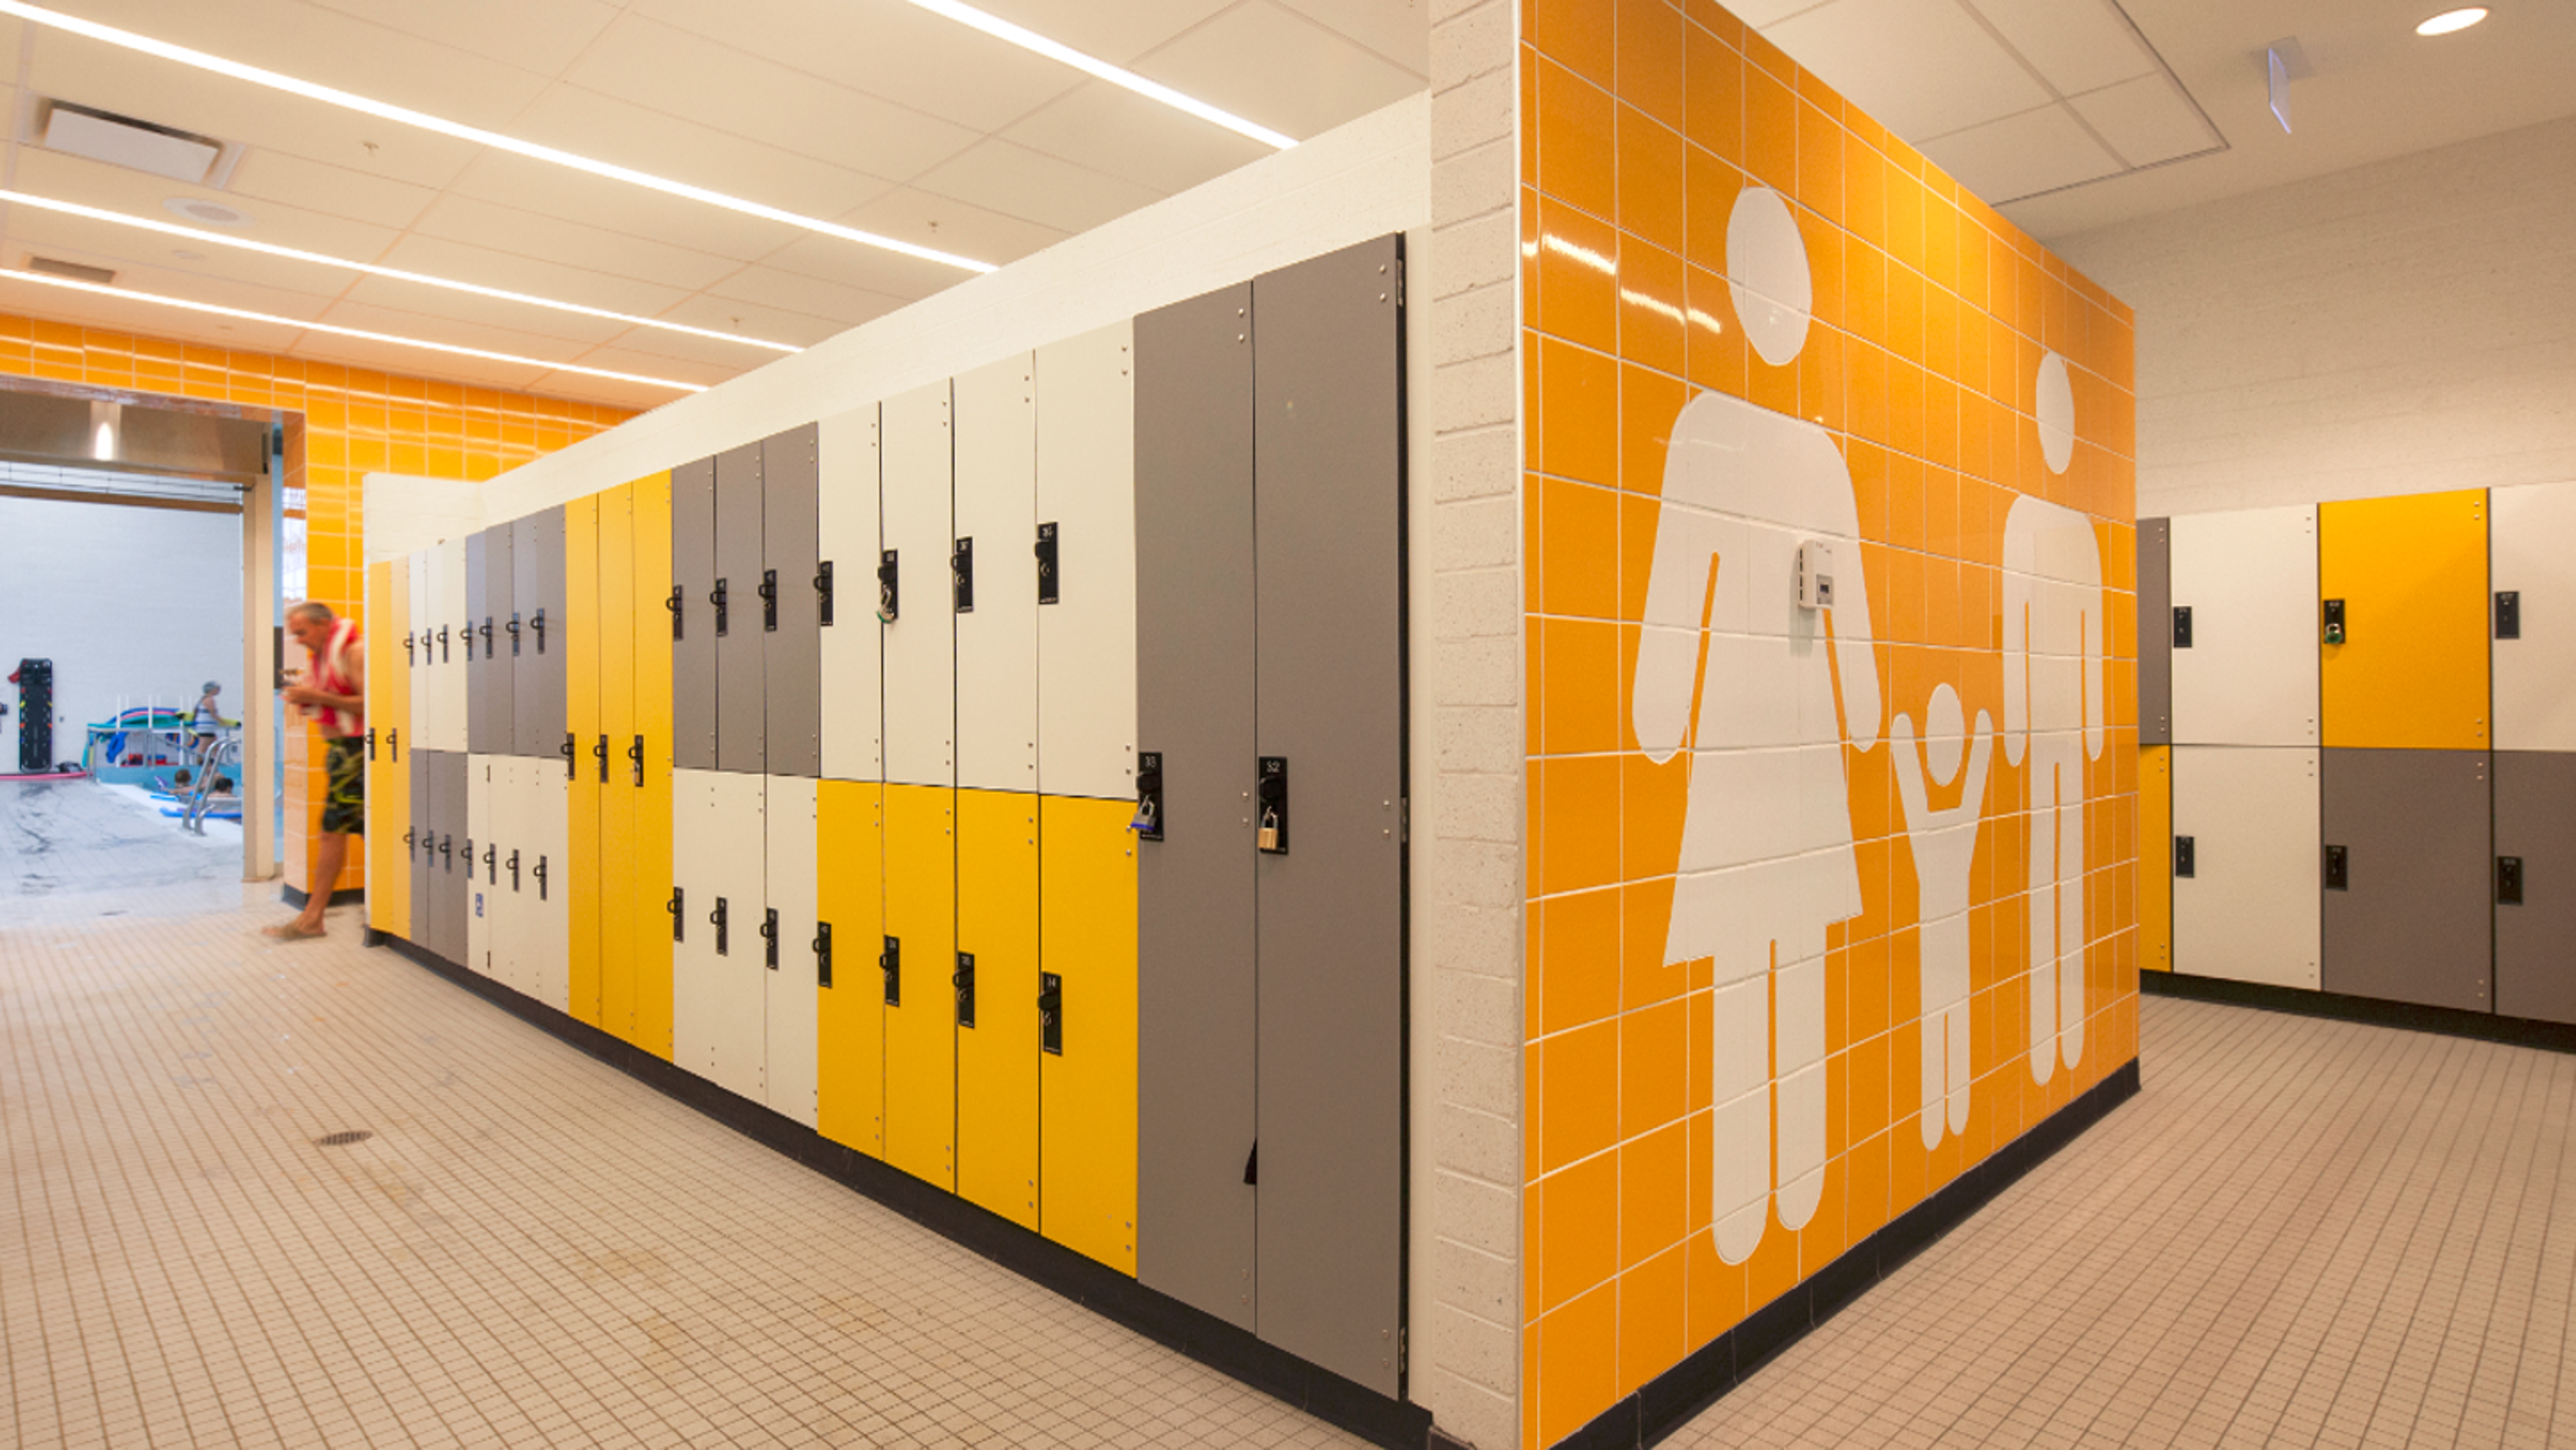 Bangert Gender Neutral Locker Room West Lafayette S Idea For New Rec Center